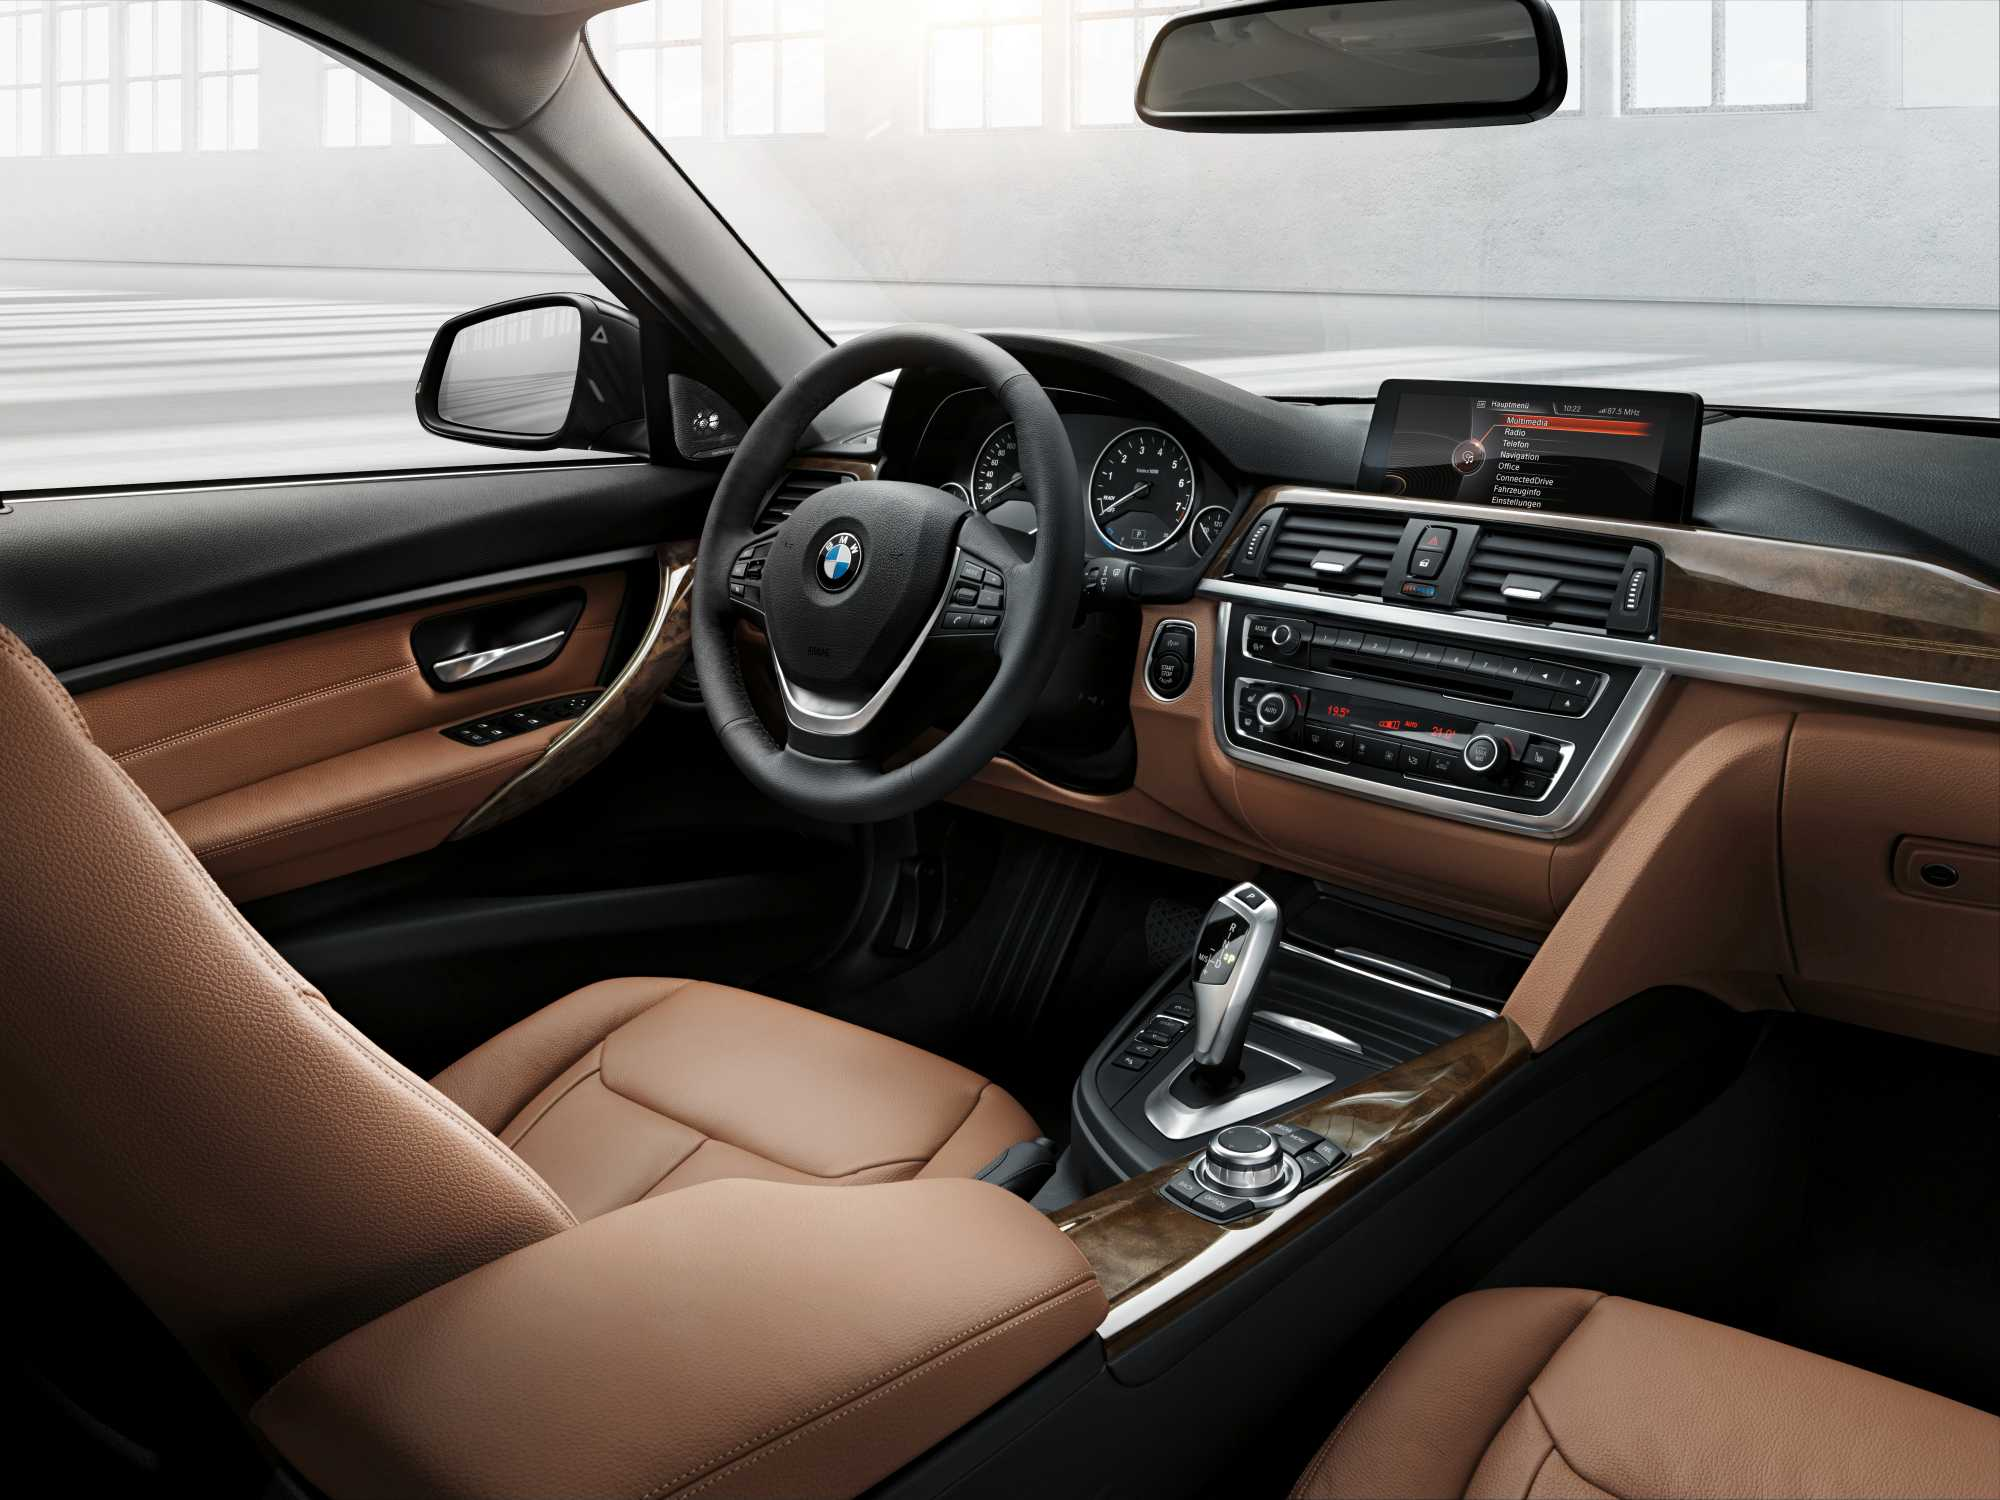 Bmw 3 Series Touring Interior Dakota Leather Saddle Brown With Exclusive Stiching 05 2012